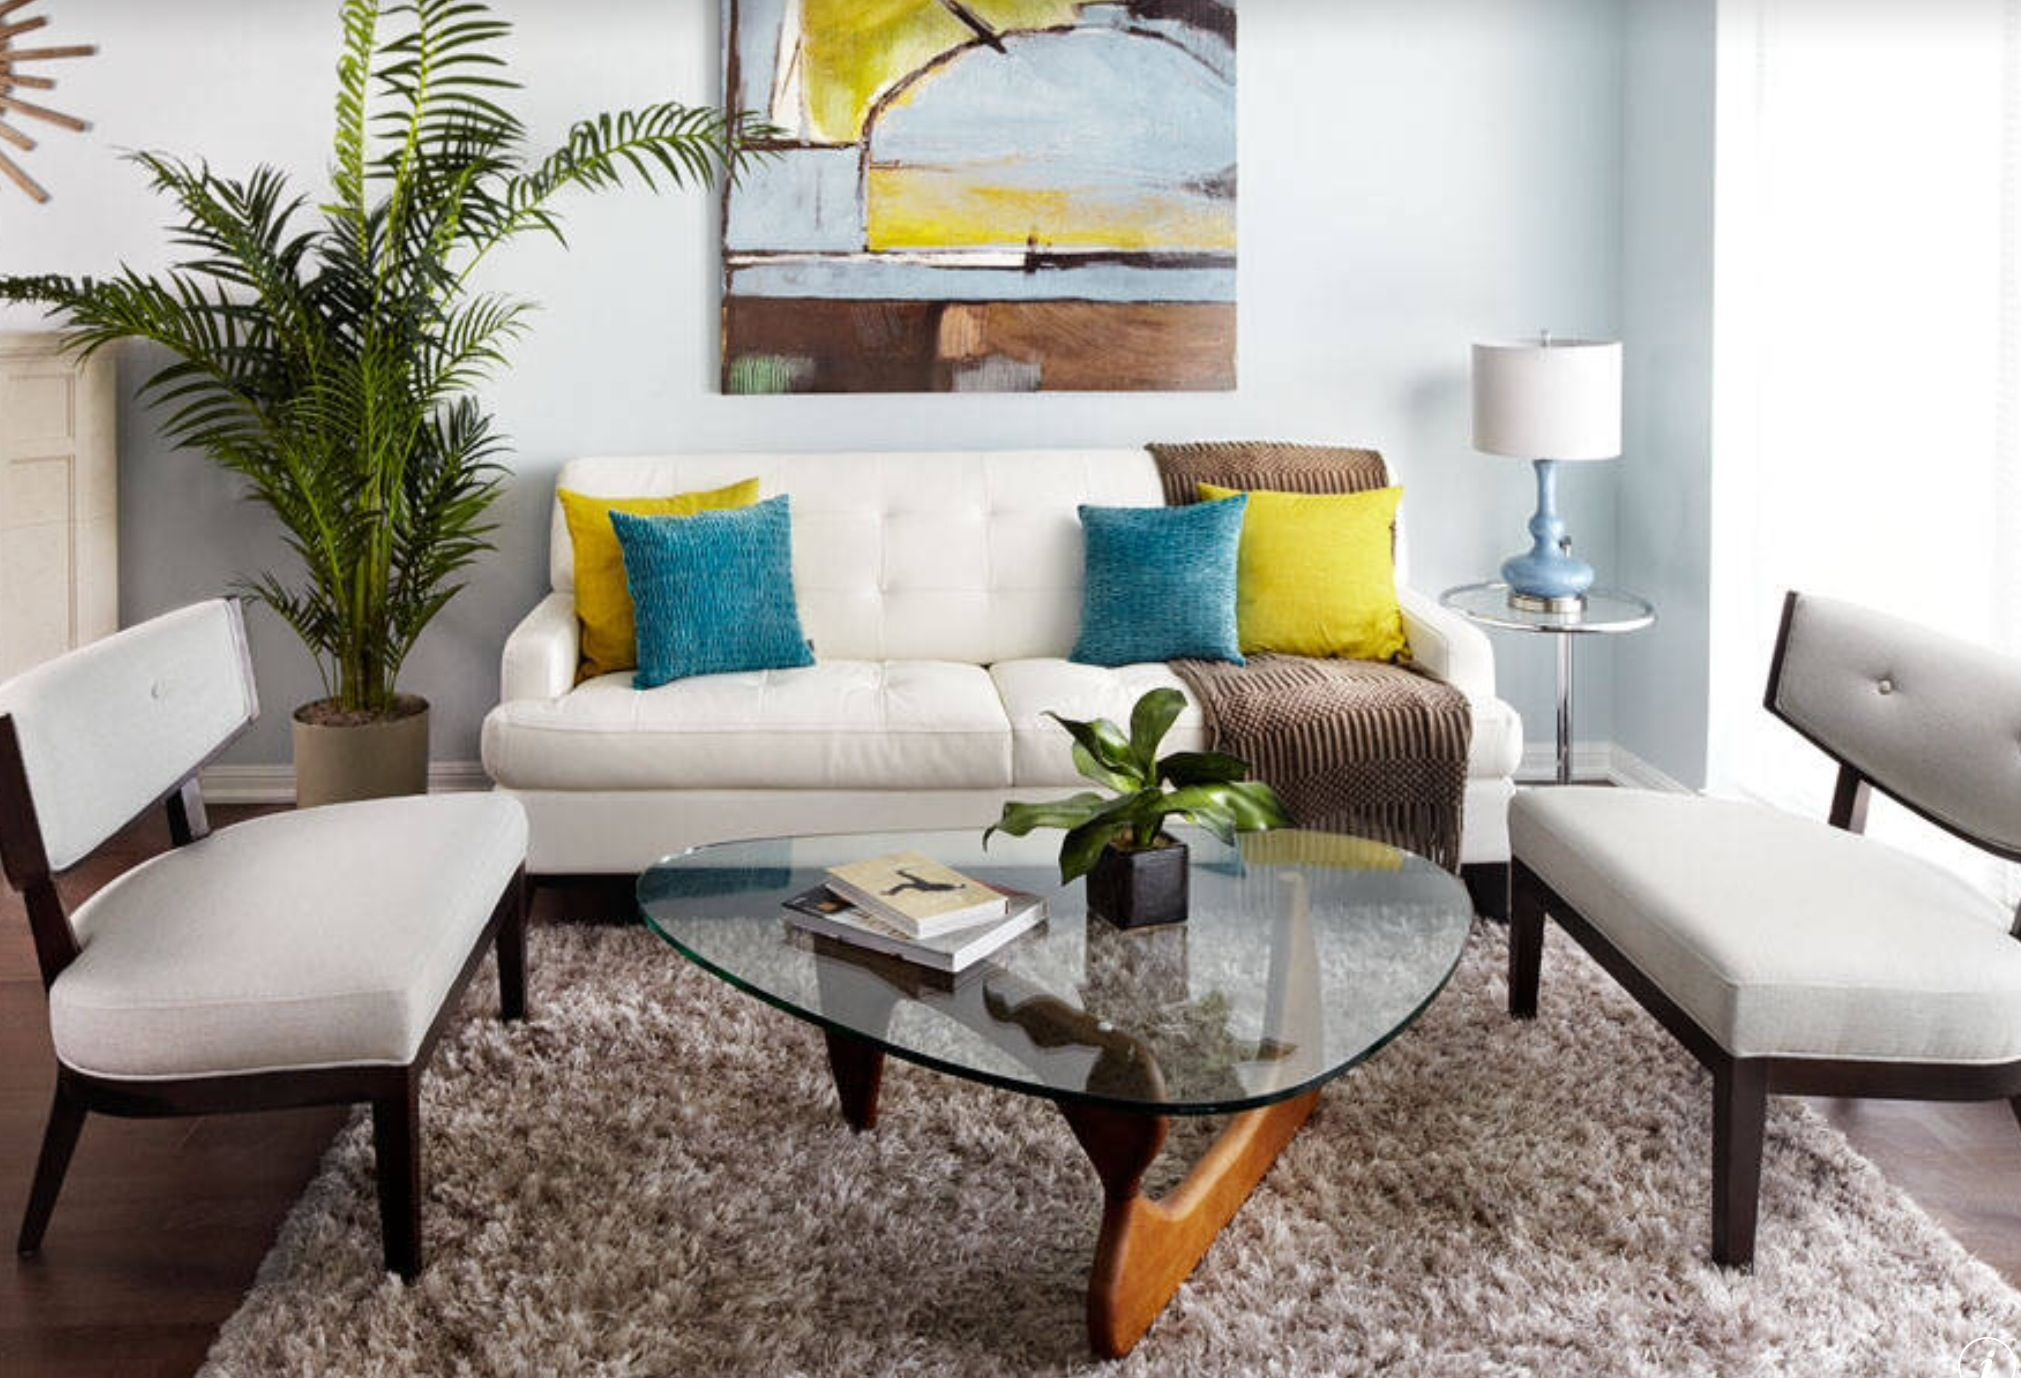 Add some color to your style maybe in your cushions or in your wall